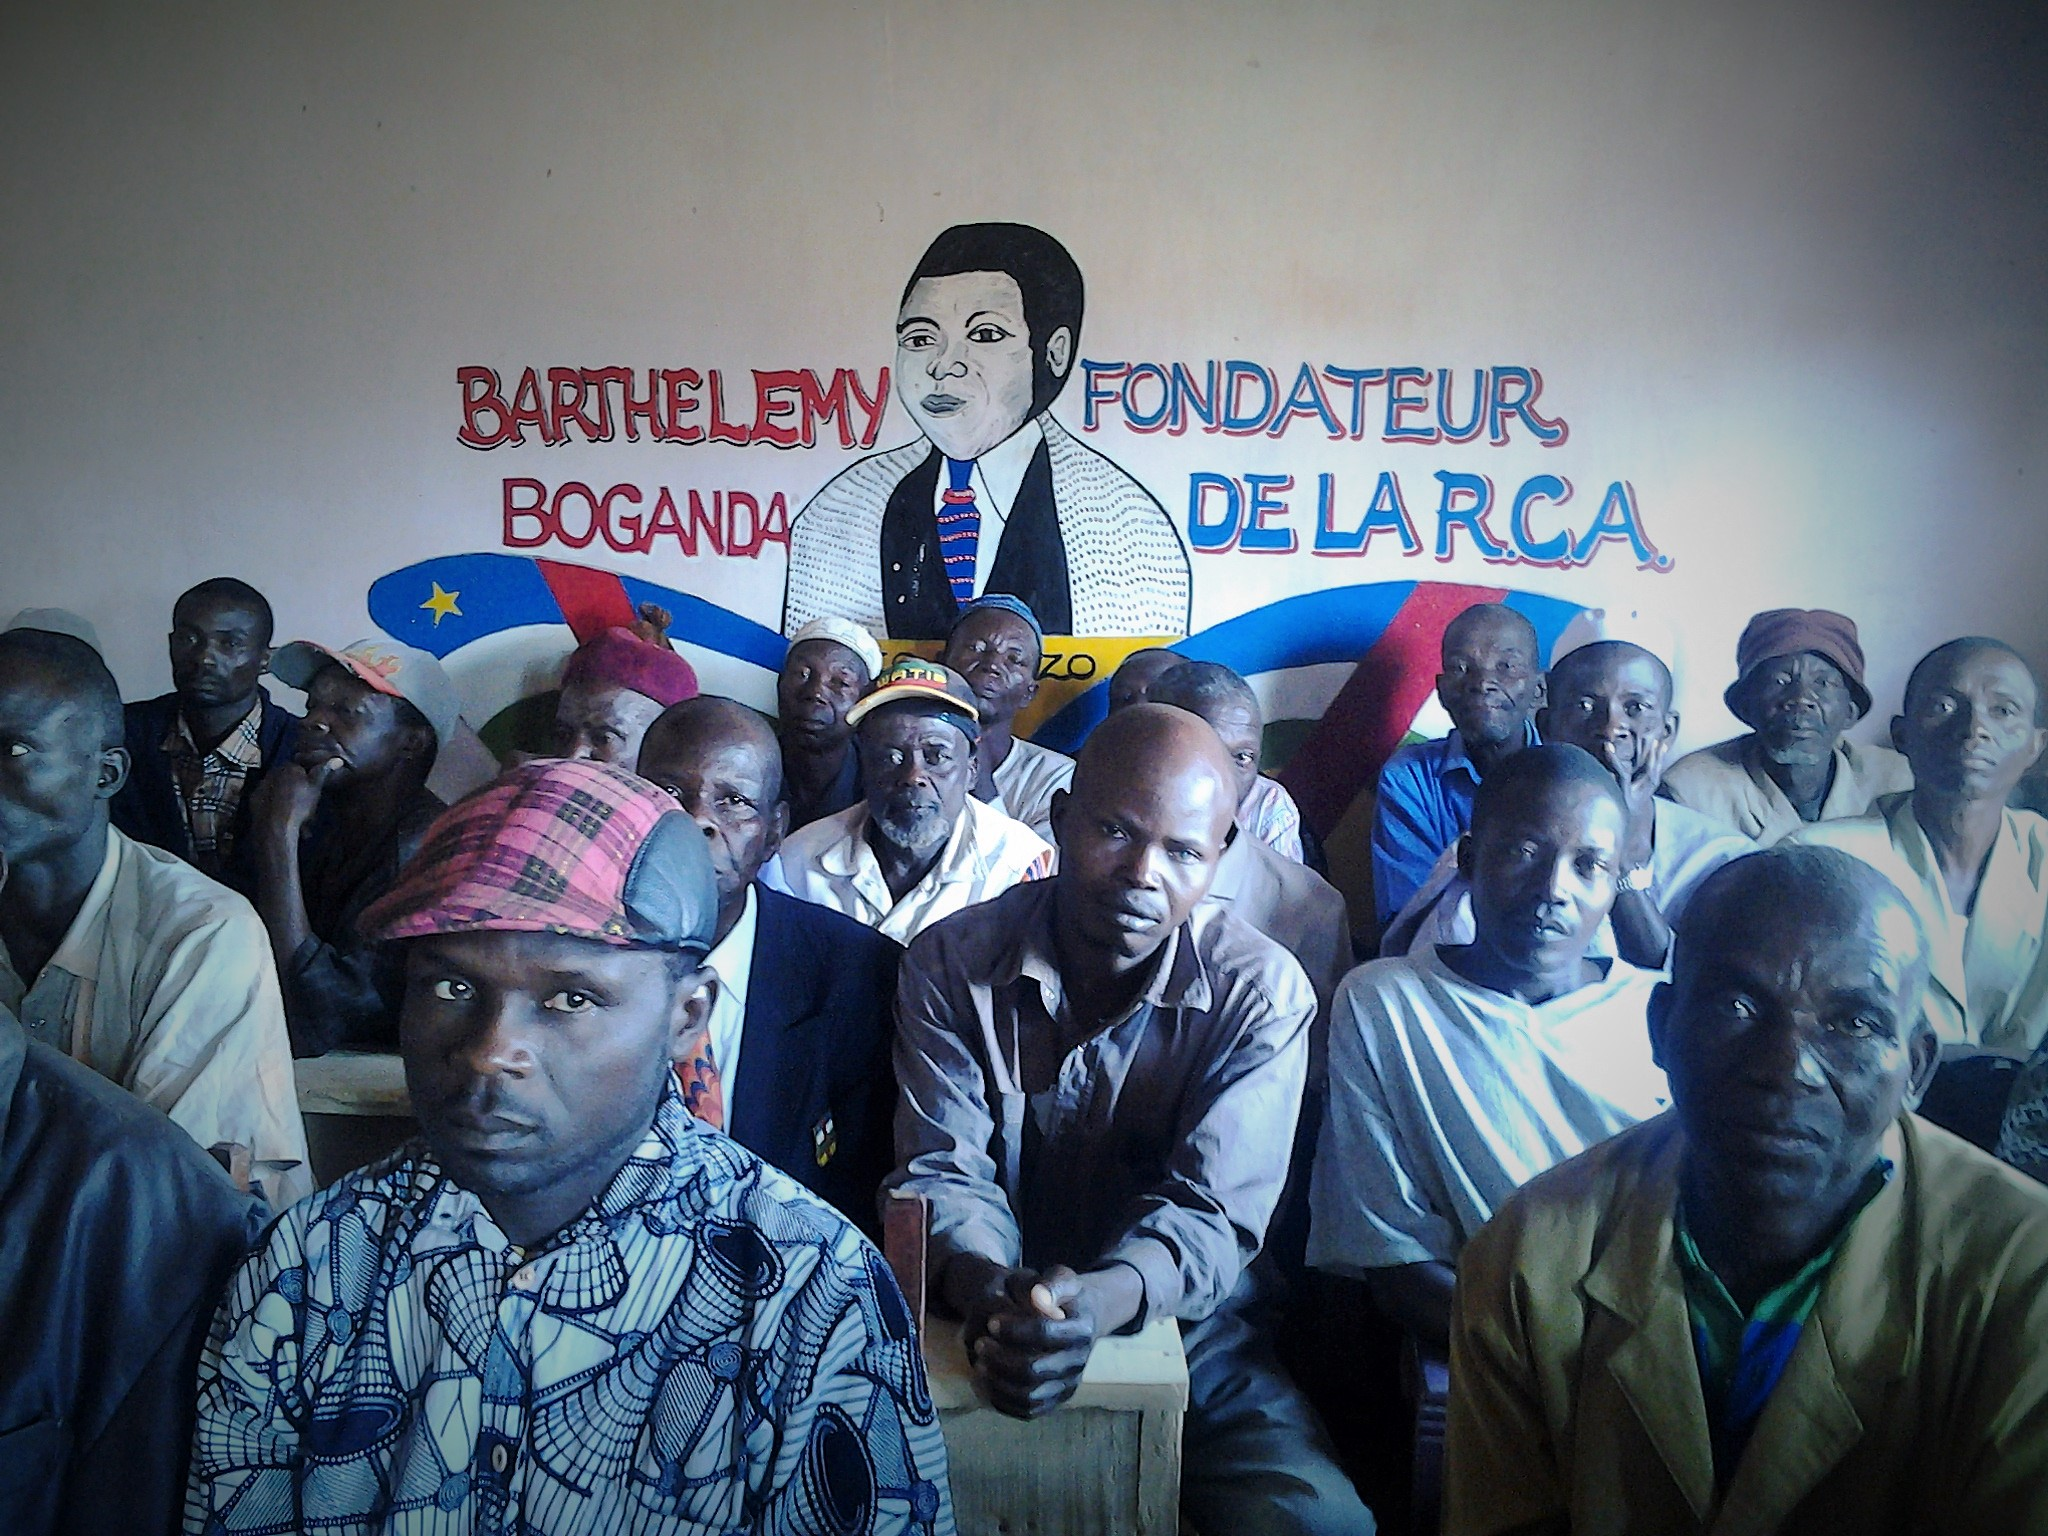 The town of Baoro air their grievances at an April 2015 consultation meeting that is part of reconciliation efforts in the Central African Republic